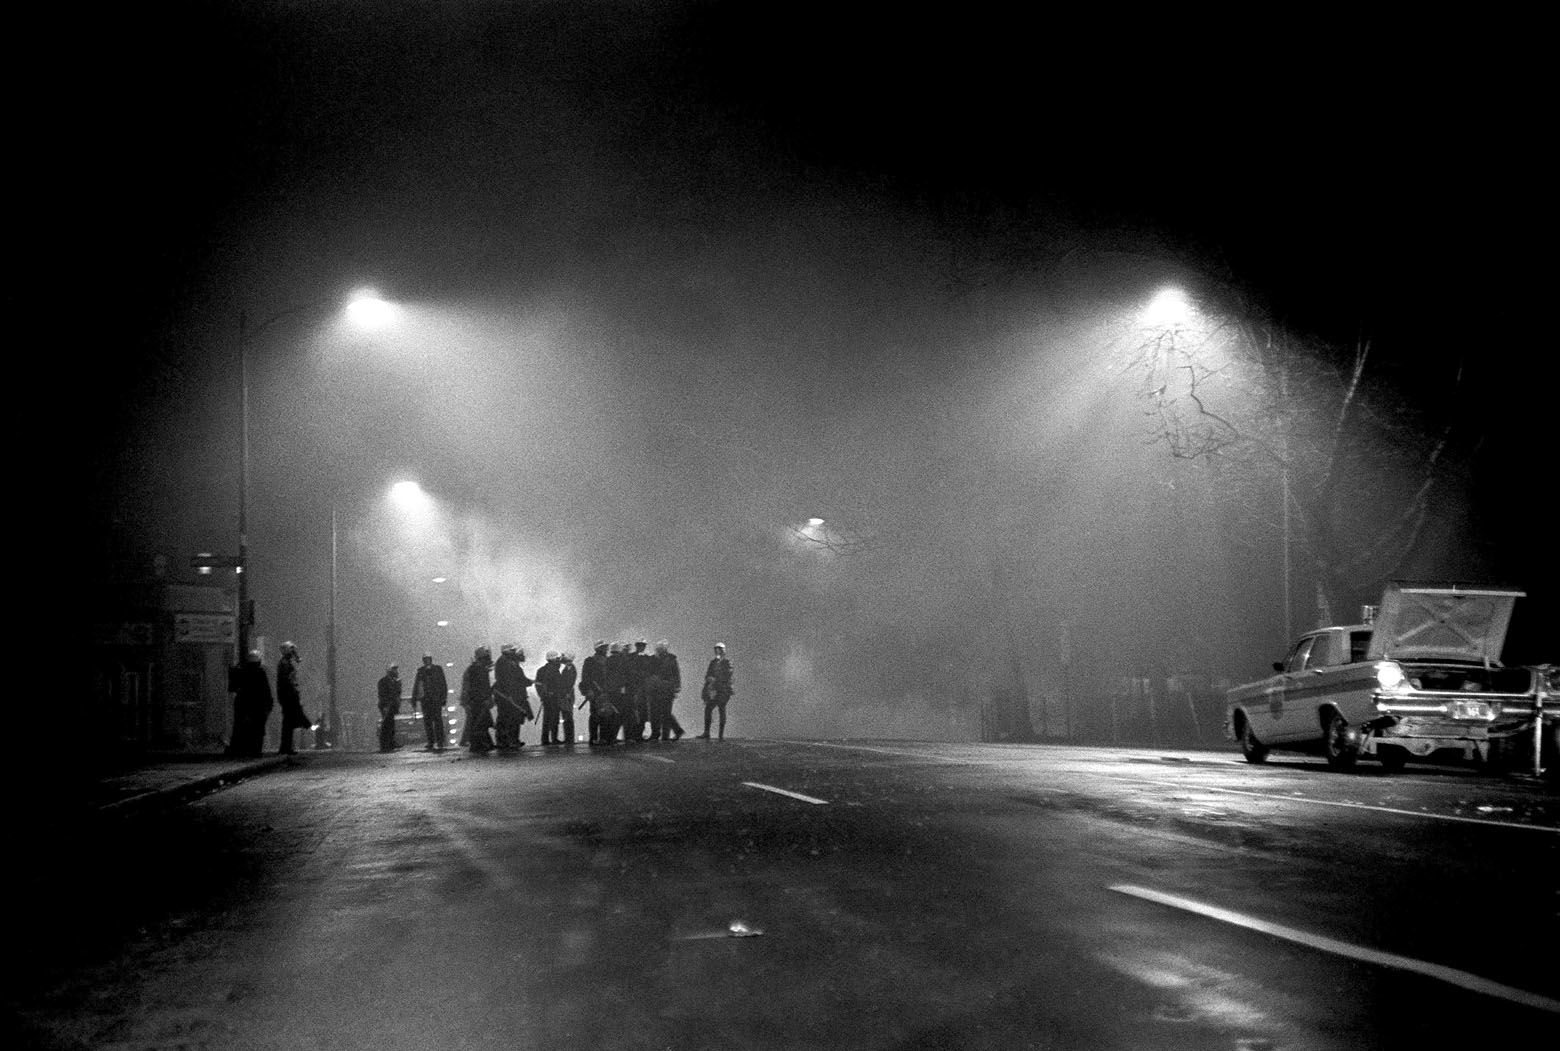 Tear gas, illuminated by street lights, fills the air as police wearing gas masks await possible further trouble in an African American area of northwest Washington on April 5, 1968. Crowds looted and started fires after learning of death of Dr. Martin Luther King Jr. (AP Photo/Charles W. Harrity)